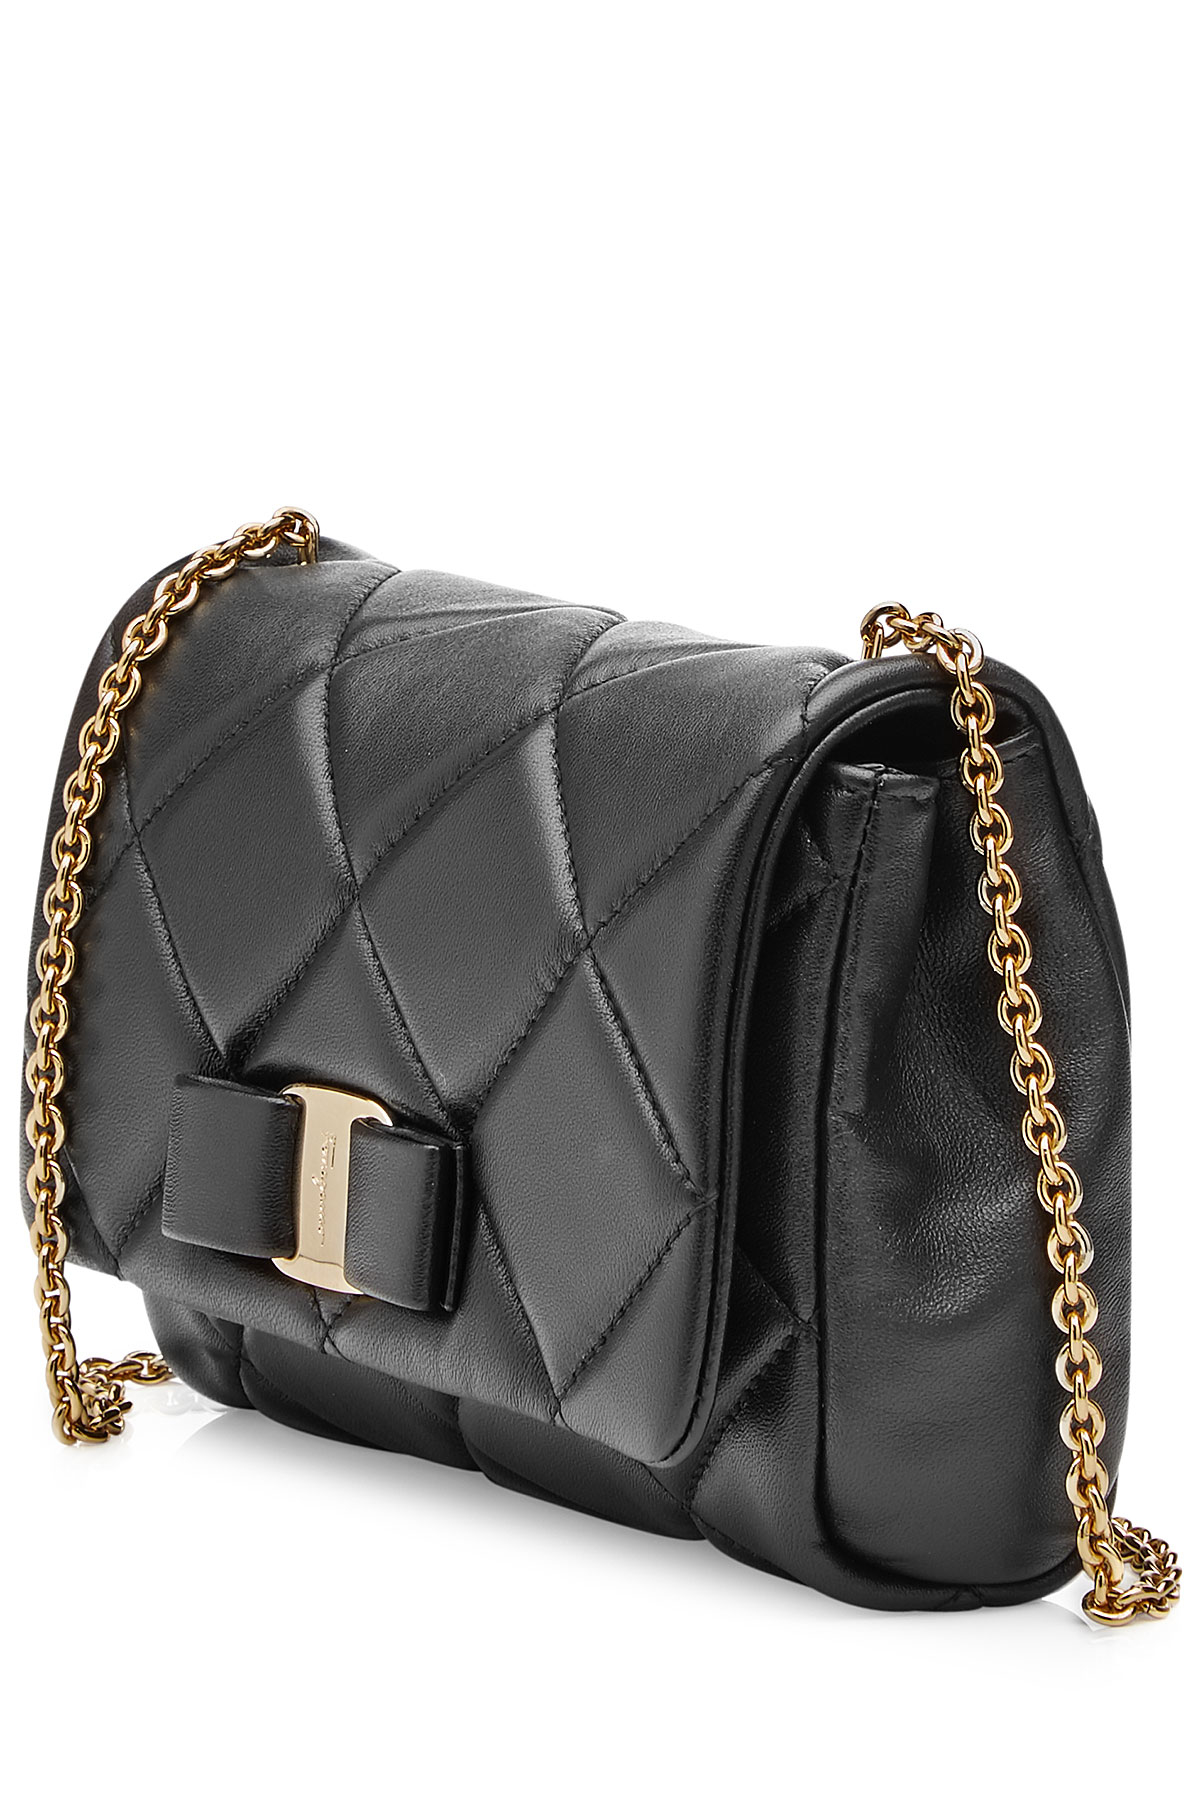 cefdae441cfd Ferragamo Gelly Mini Quilted Leather Shoulder Bag - Black in Black ...